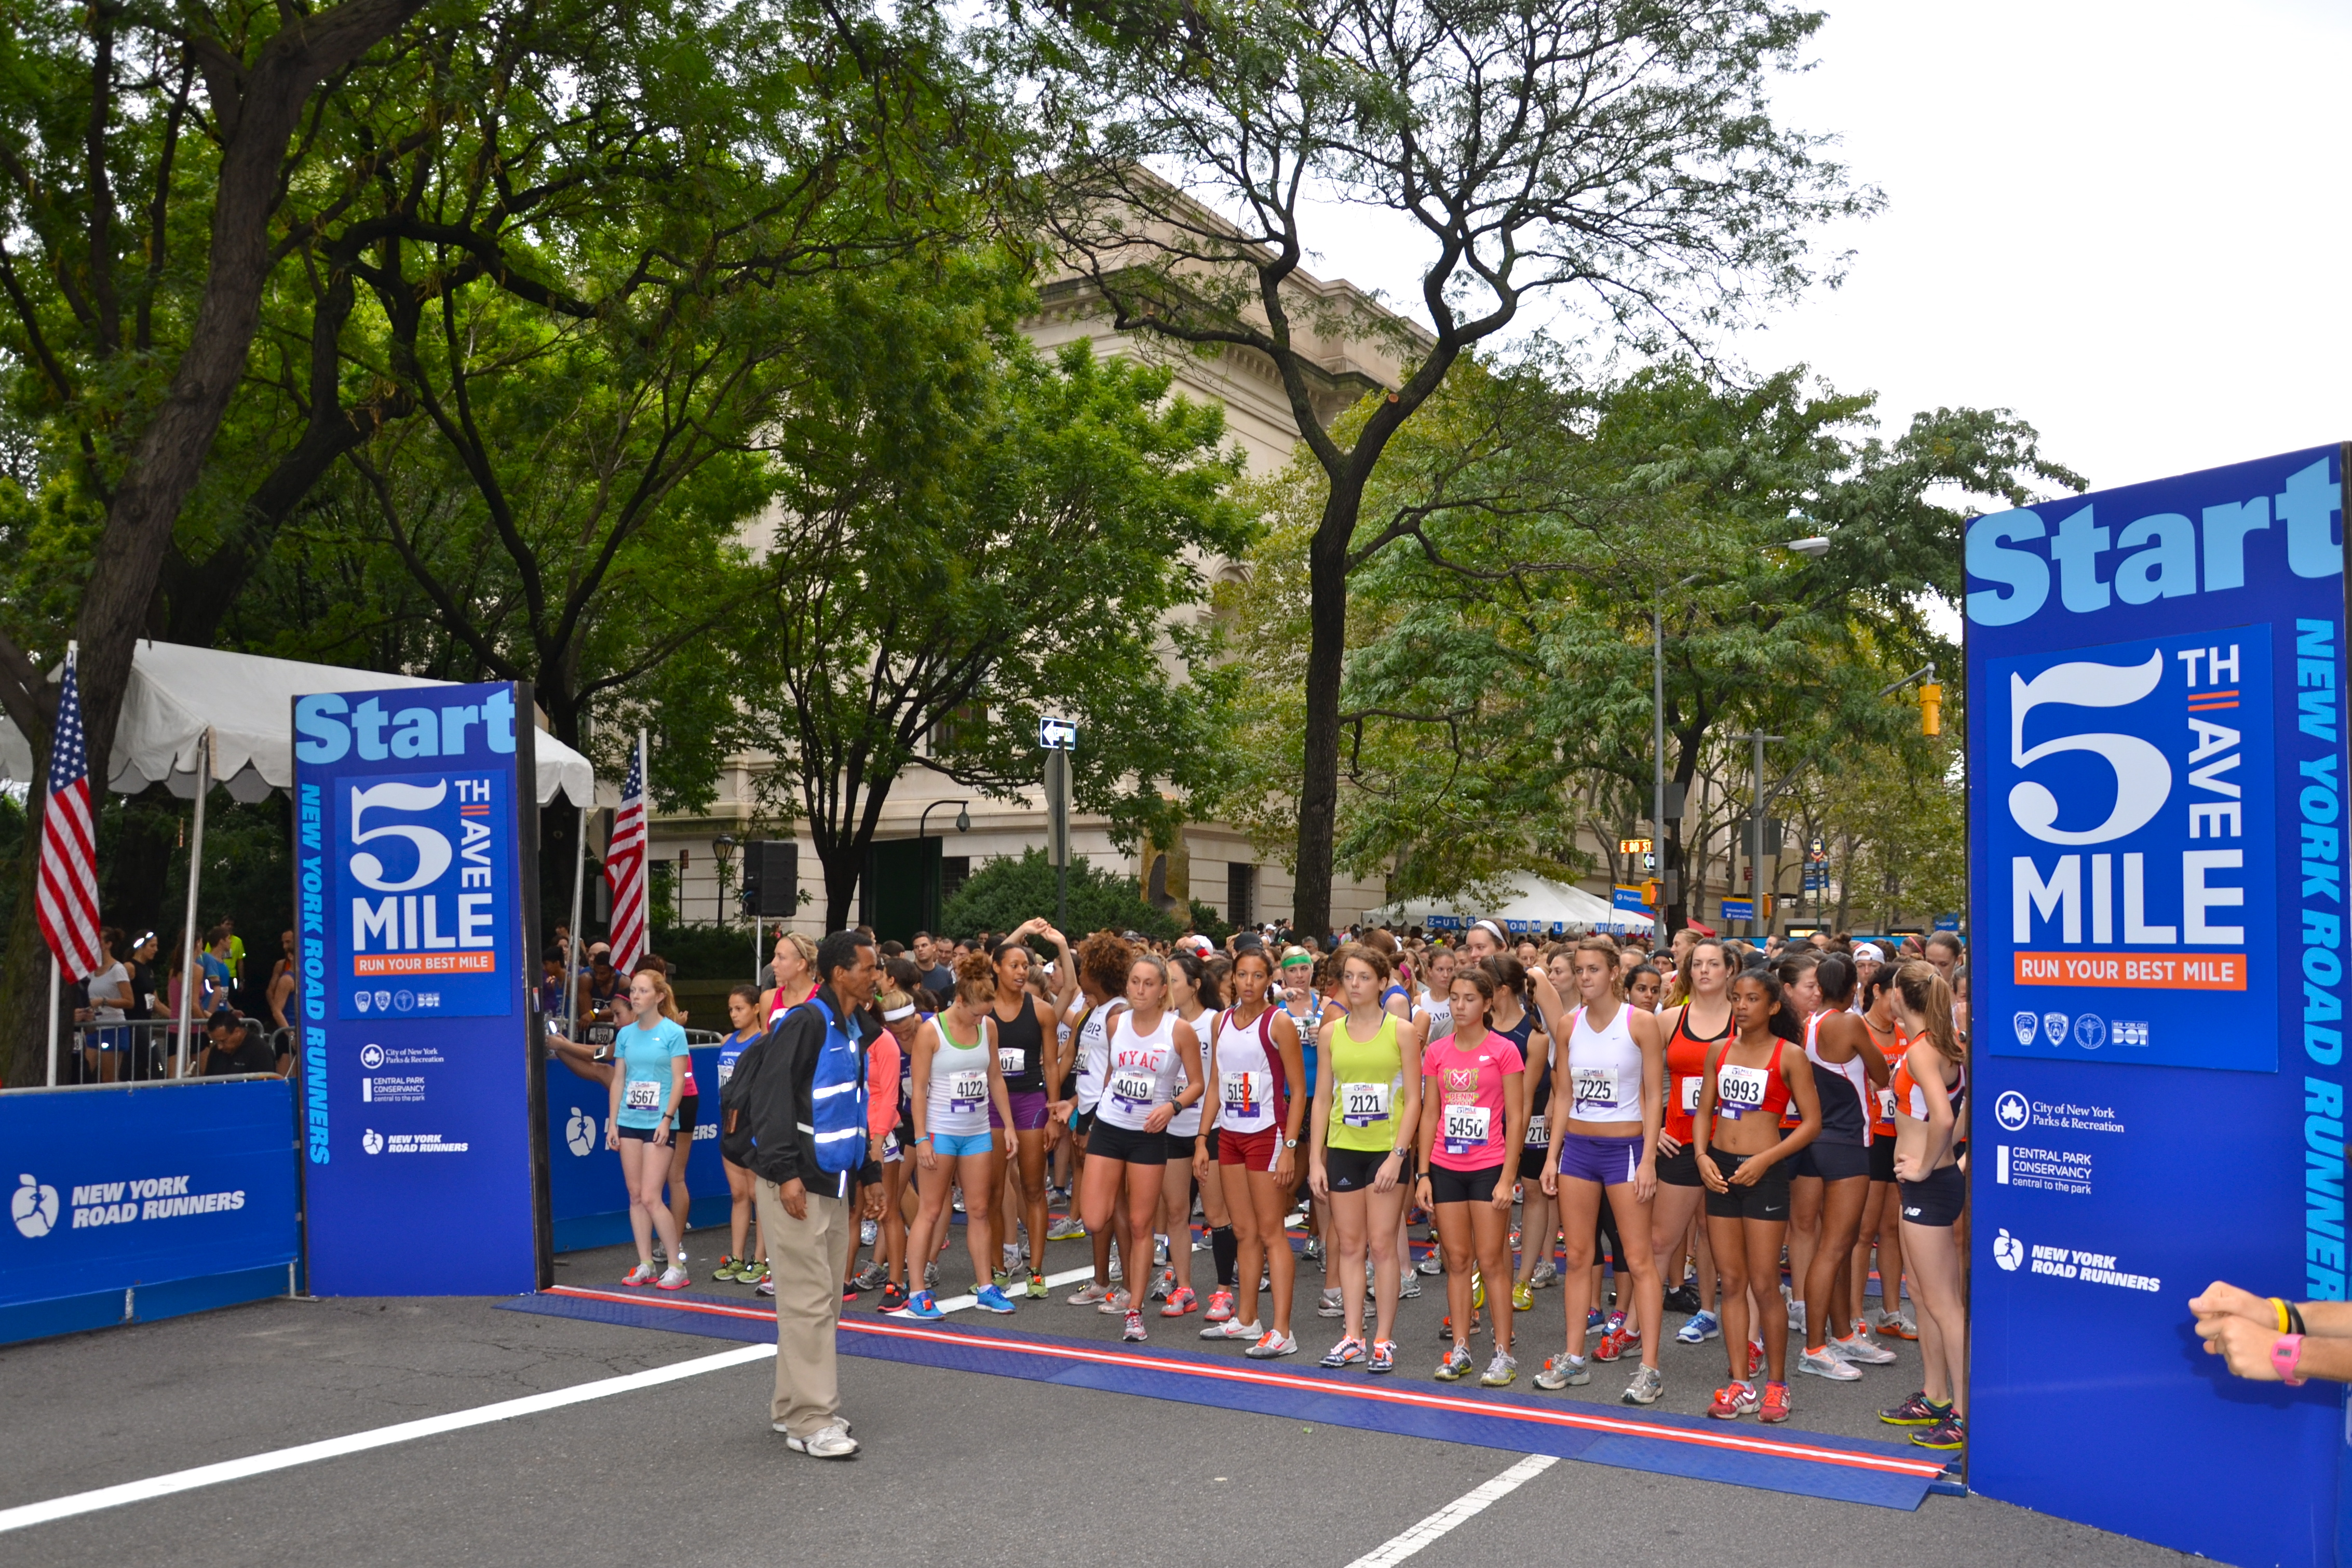 Fifth Avenue Mile Start